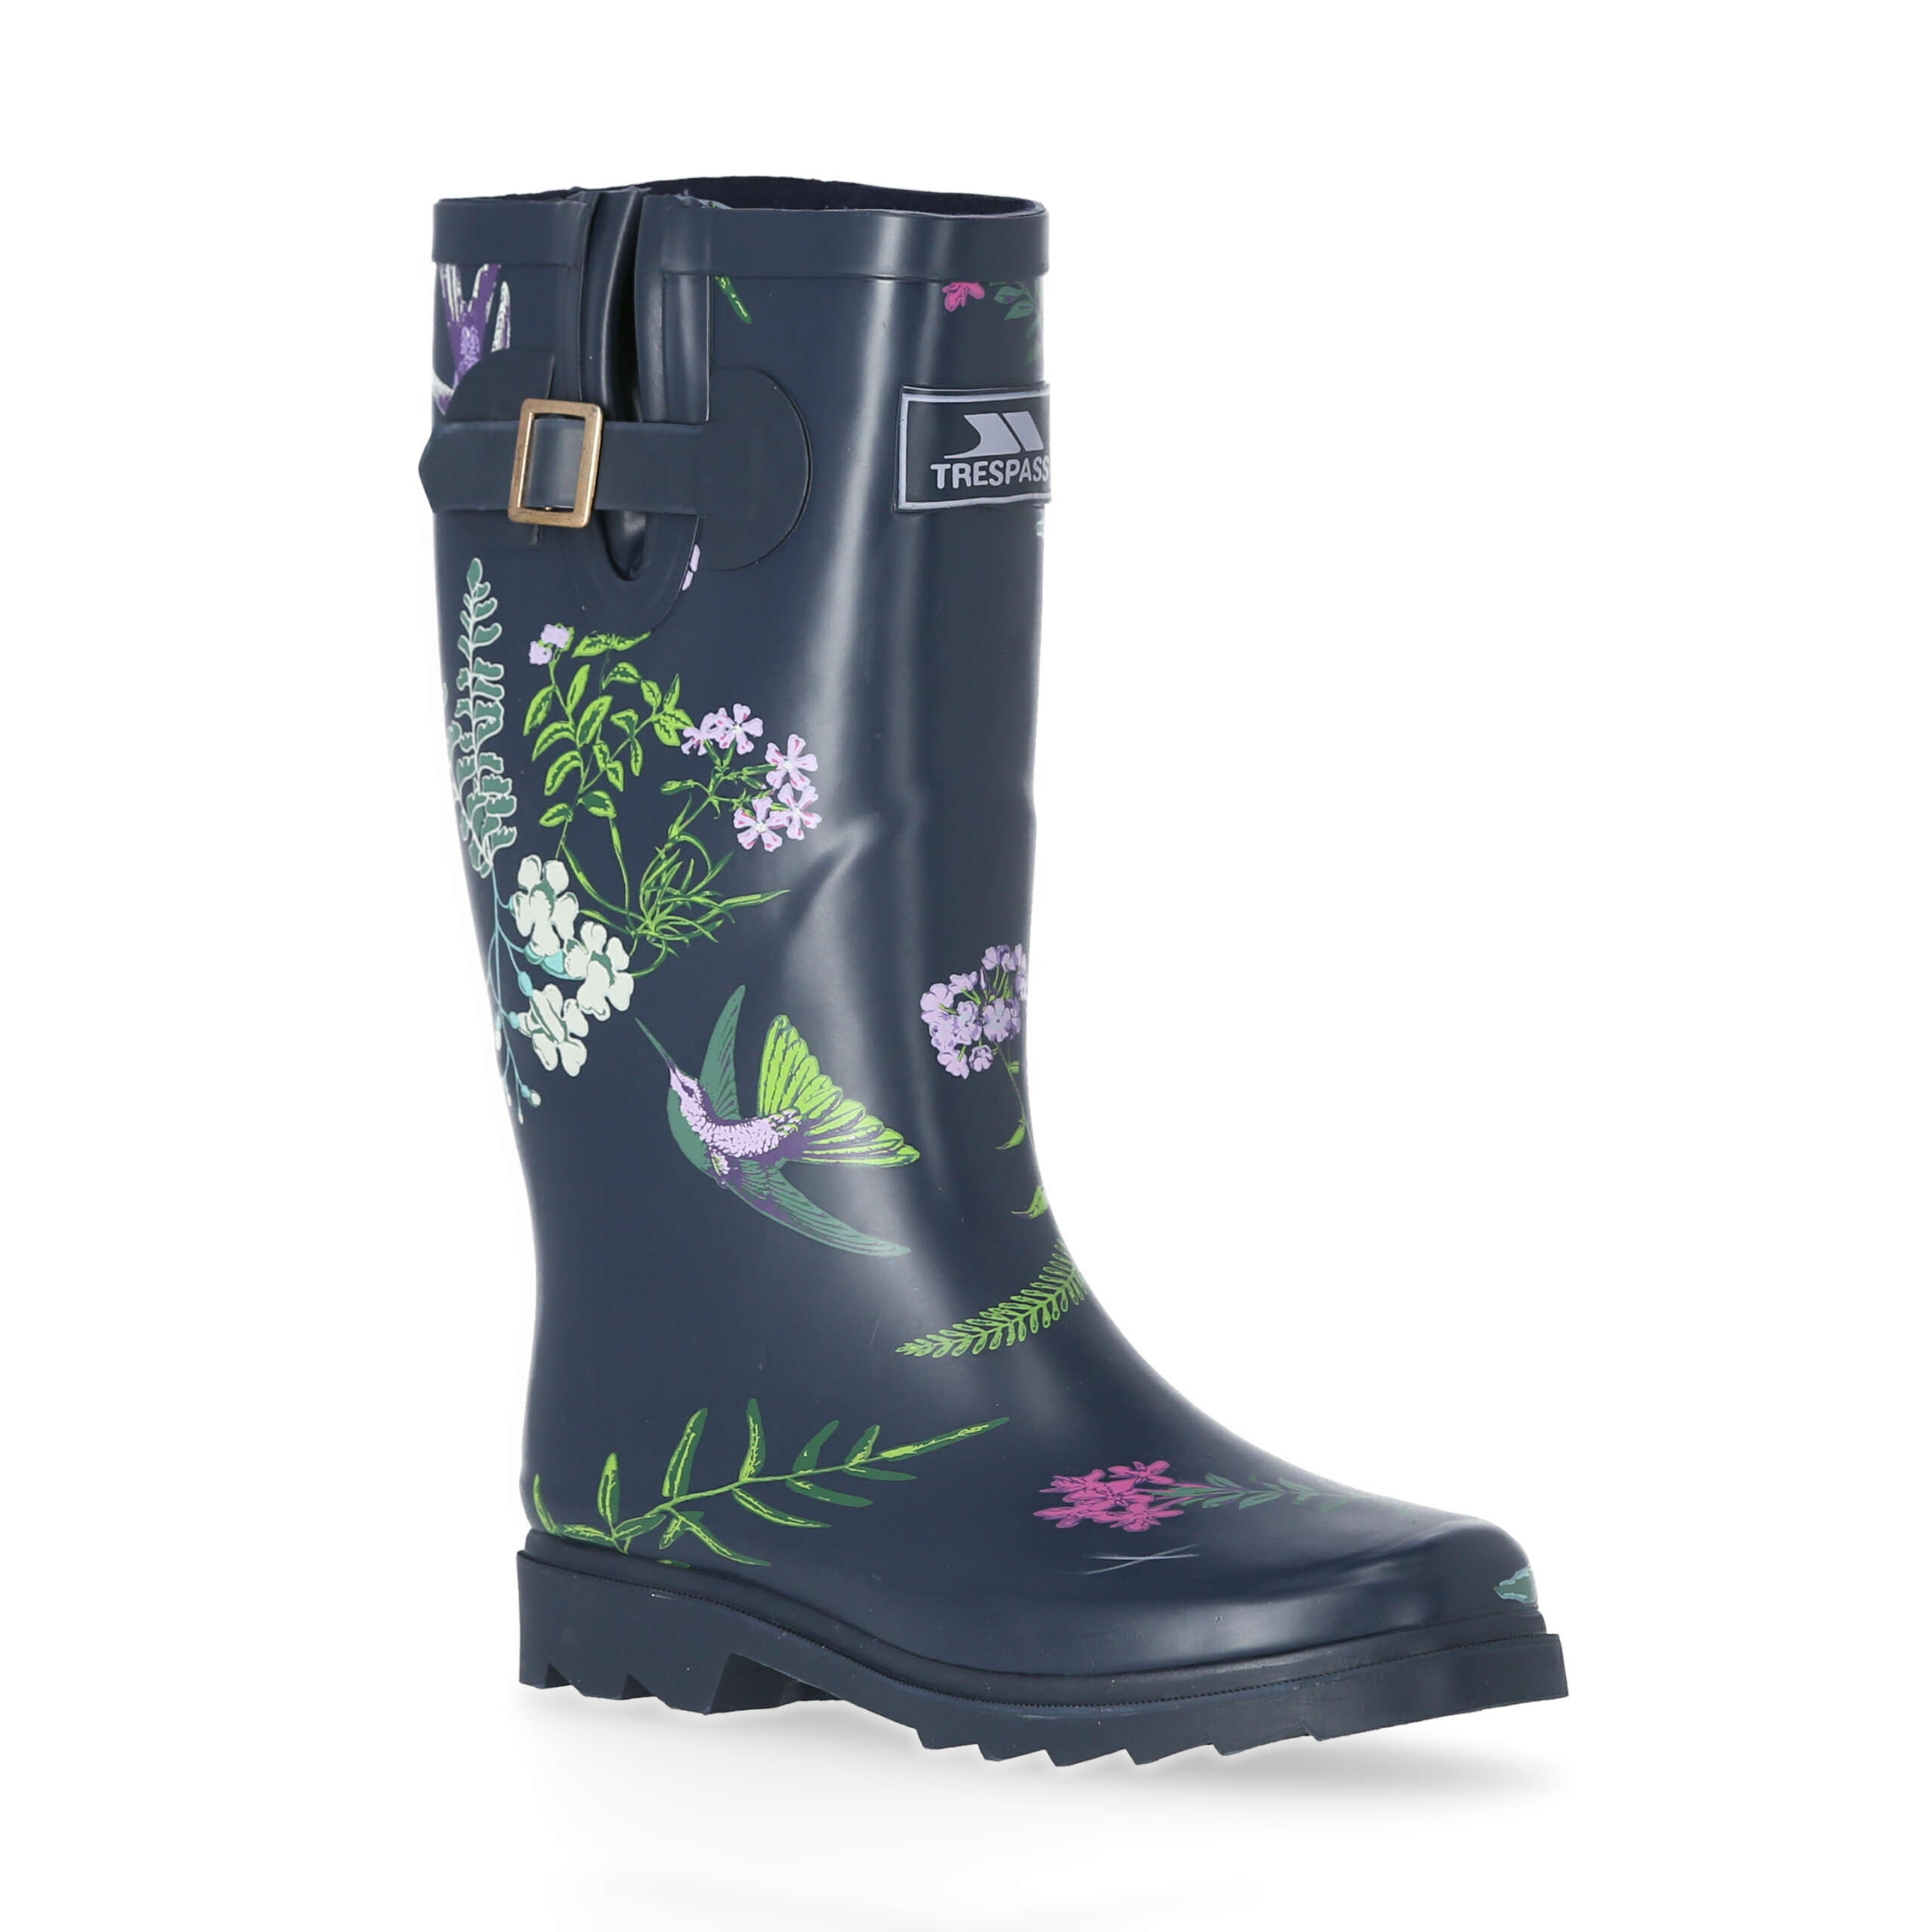 Trespass Womens Elena Full Length Wellington Boots